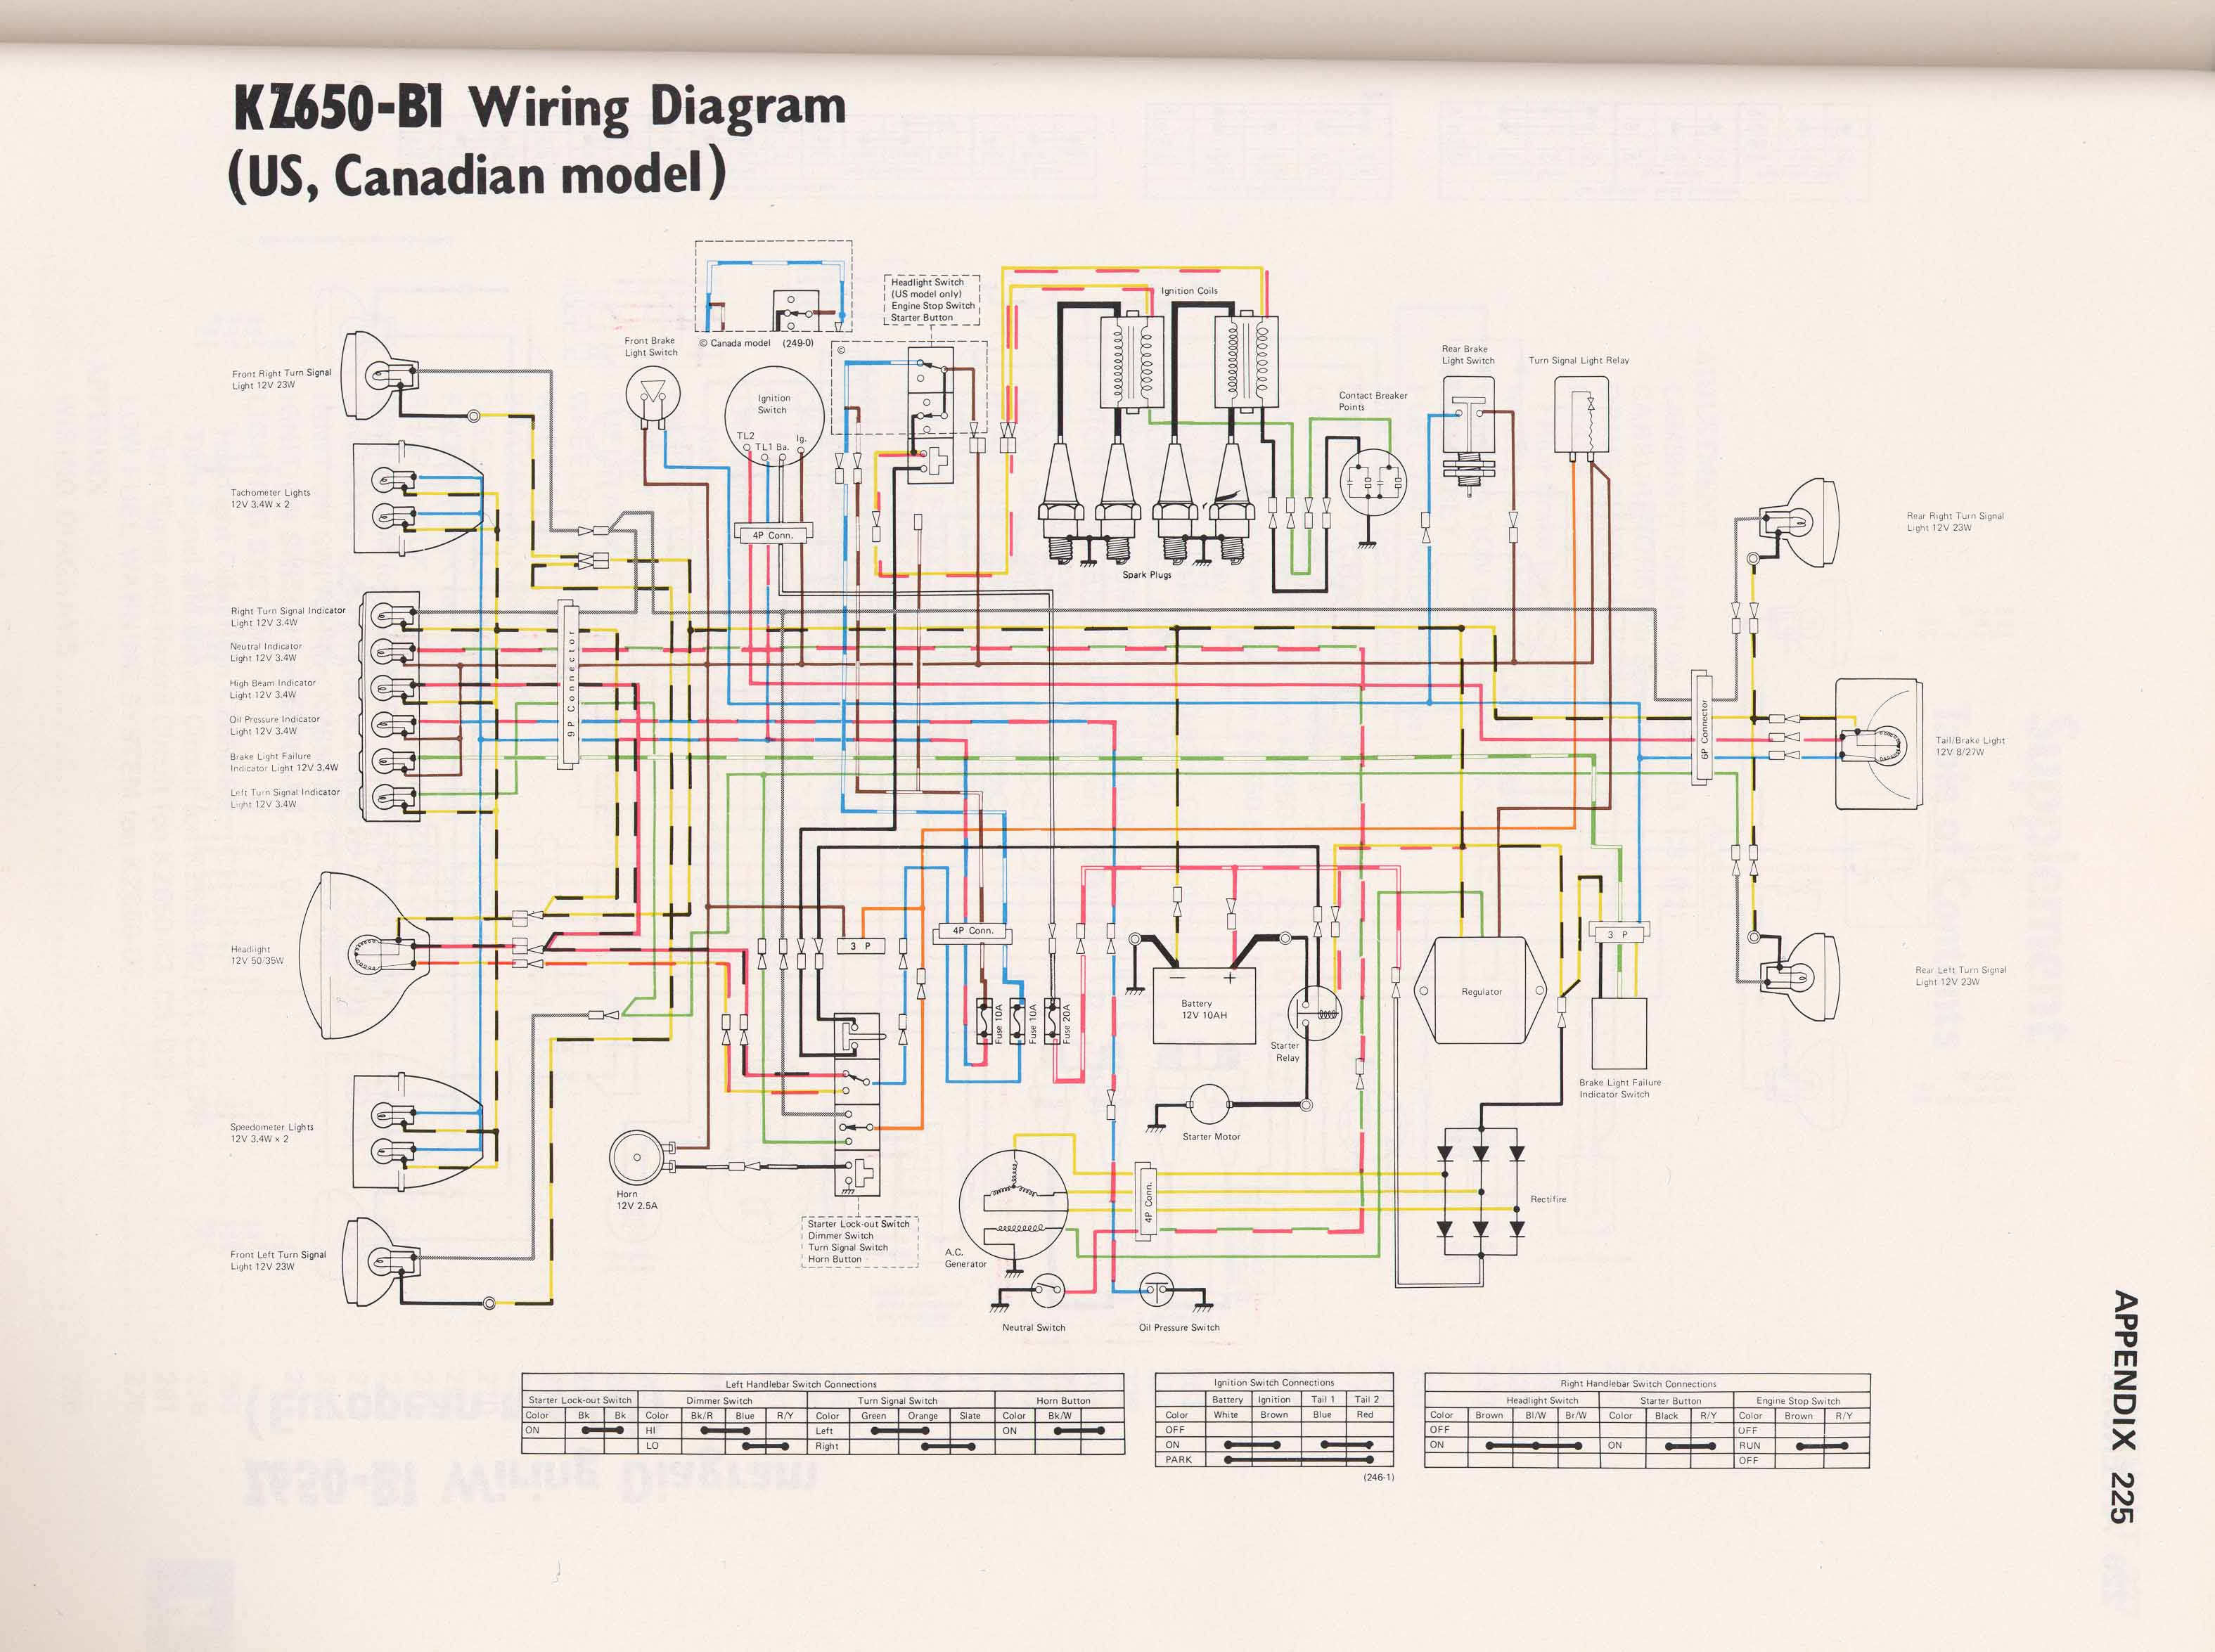 WRG-1822] Wiring Diagram Cdi Yamaha Bw on